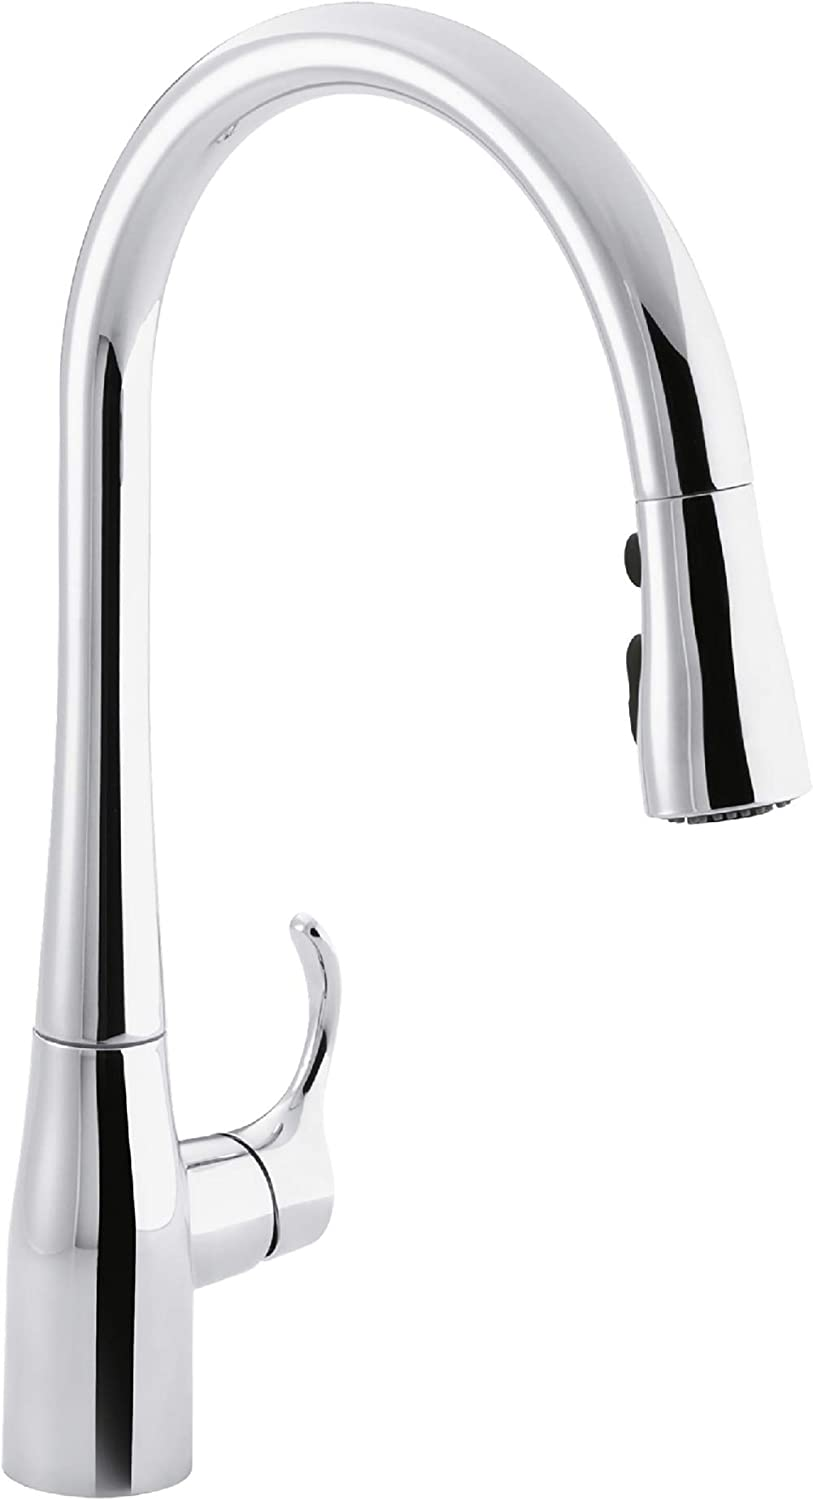 Top 10 Best Kitchen Faucets under $100, $150 to $200 Reviews in 2021 7